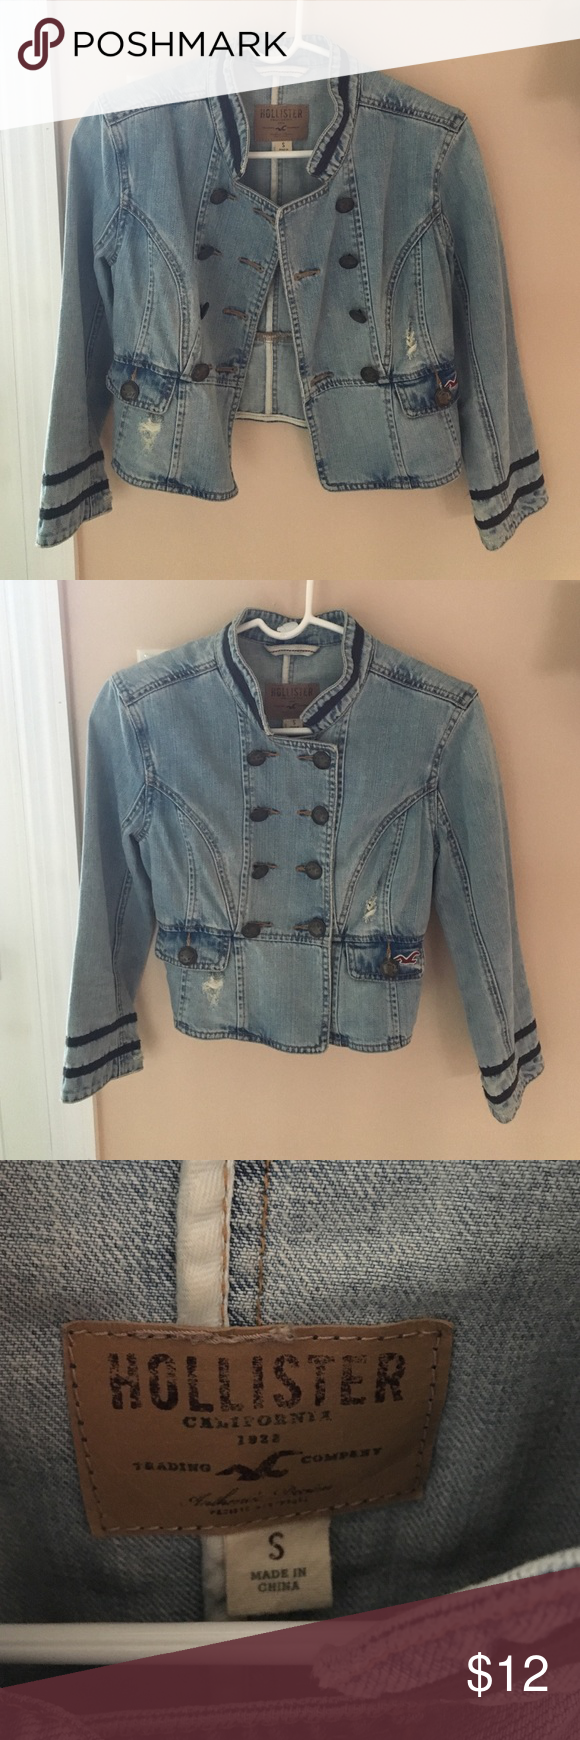 Hollister jean jacket hollister jeans hollister jackets and